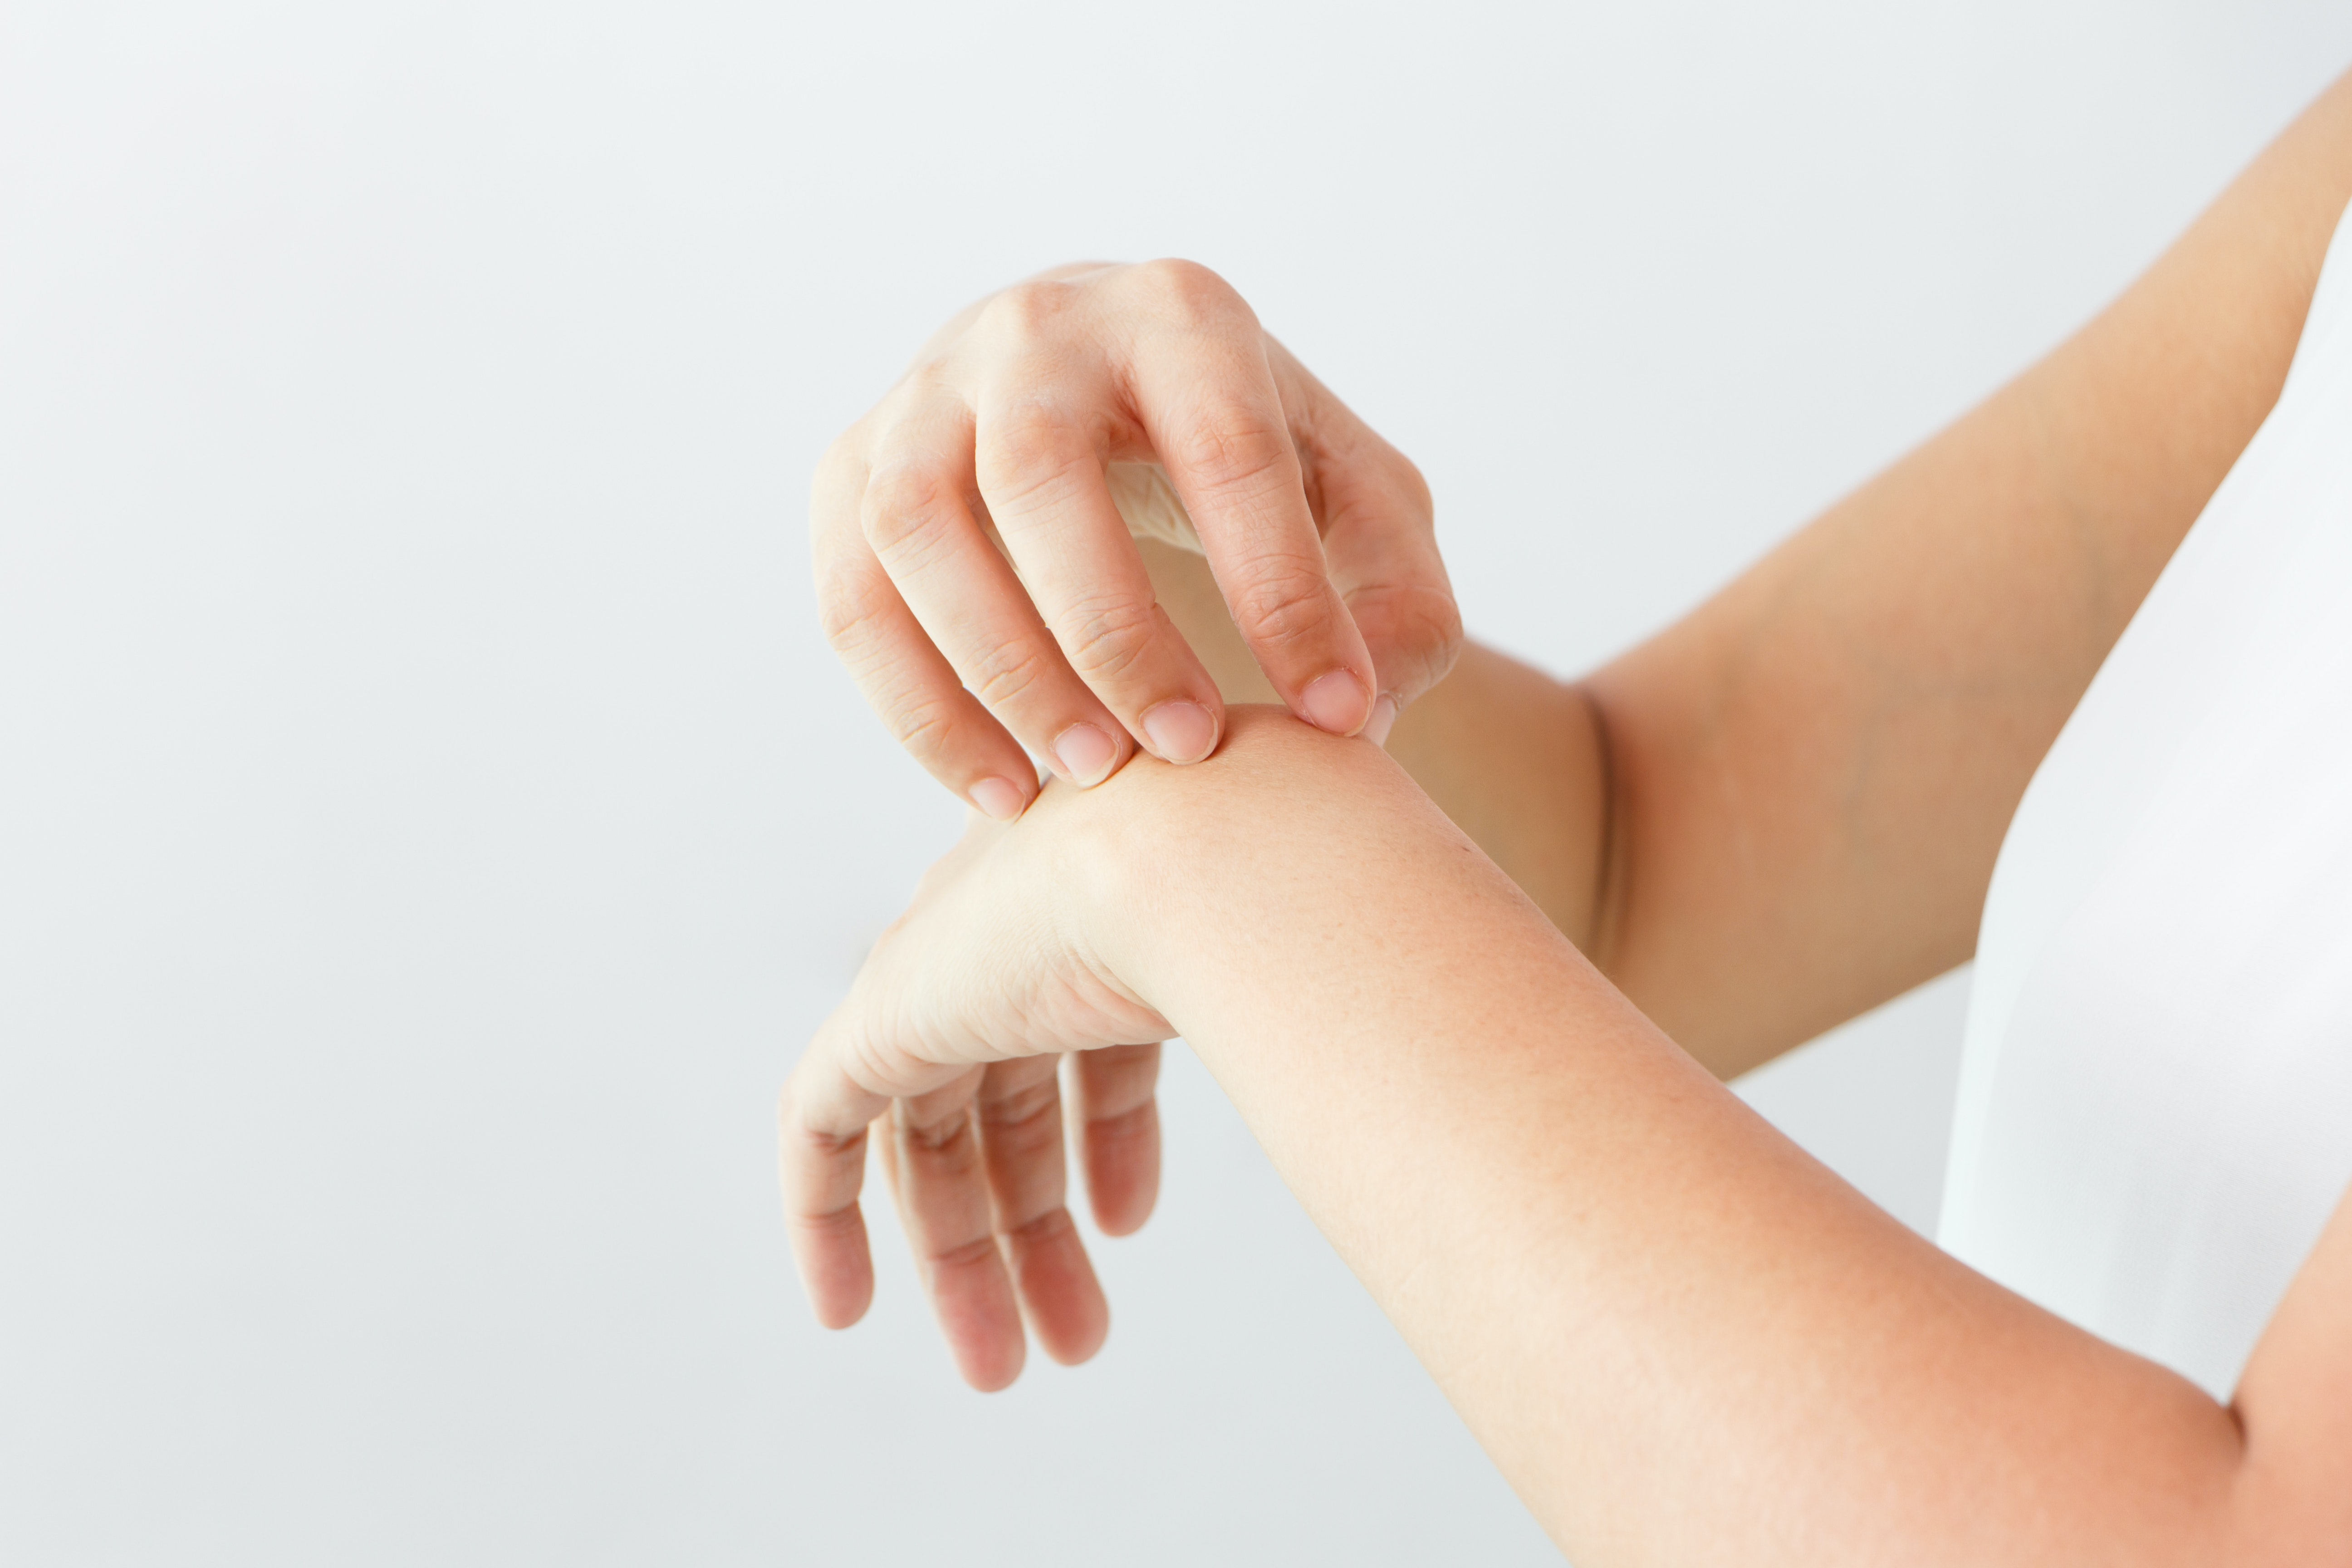 An image depicting a person suffering from wrist weakness symptoms